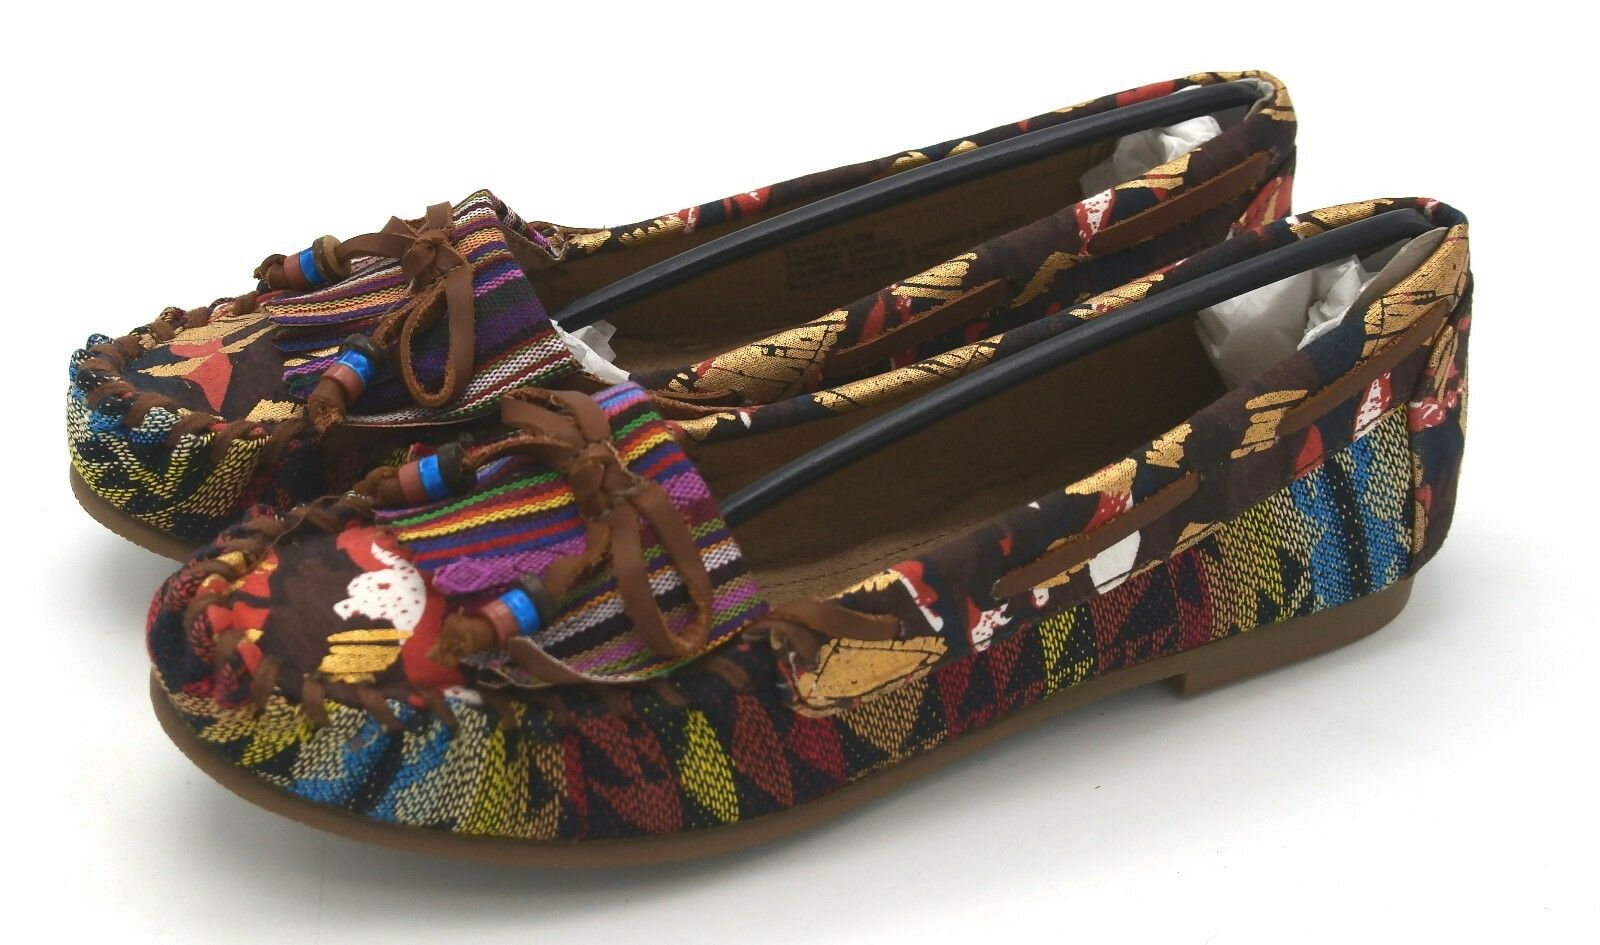 J5812 New Women's Steve Madden Teana Bright Multi color Textile Flat 6.5 M